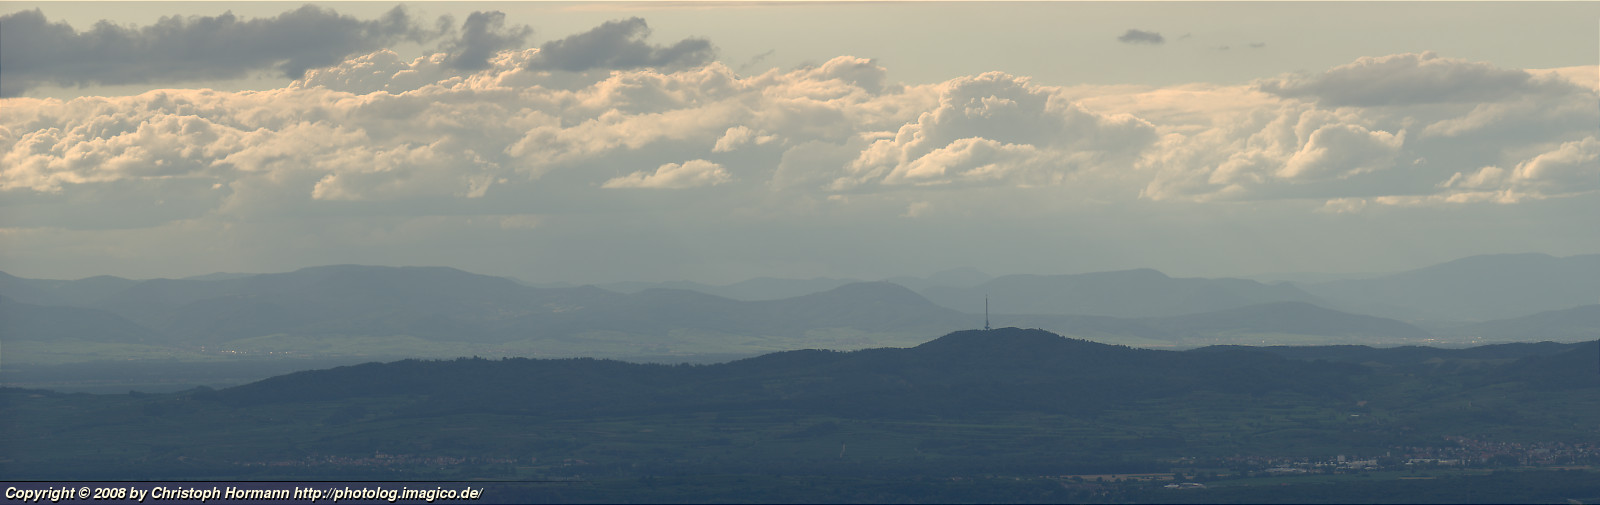 image 28: Clouds over Vosges mountains and Kaiserstuhl